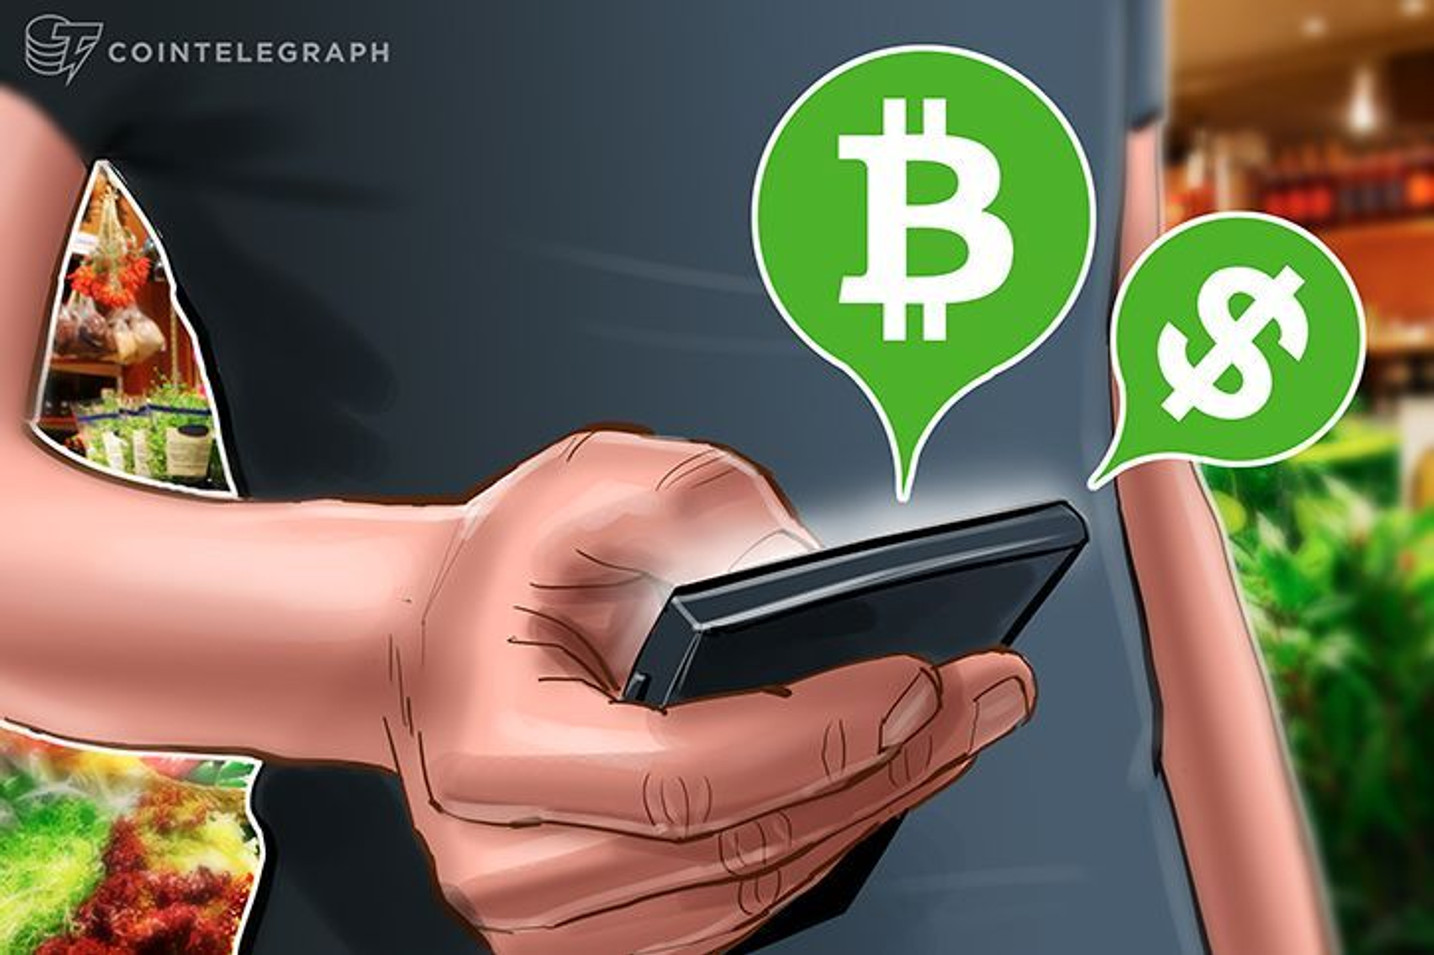 Square Cash Adds BTC Buy/Sell Option For Wyoming Customers, 'Working On' New York